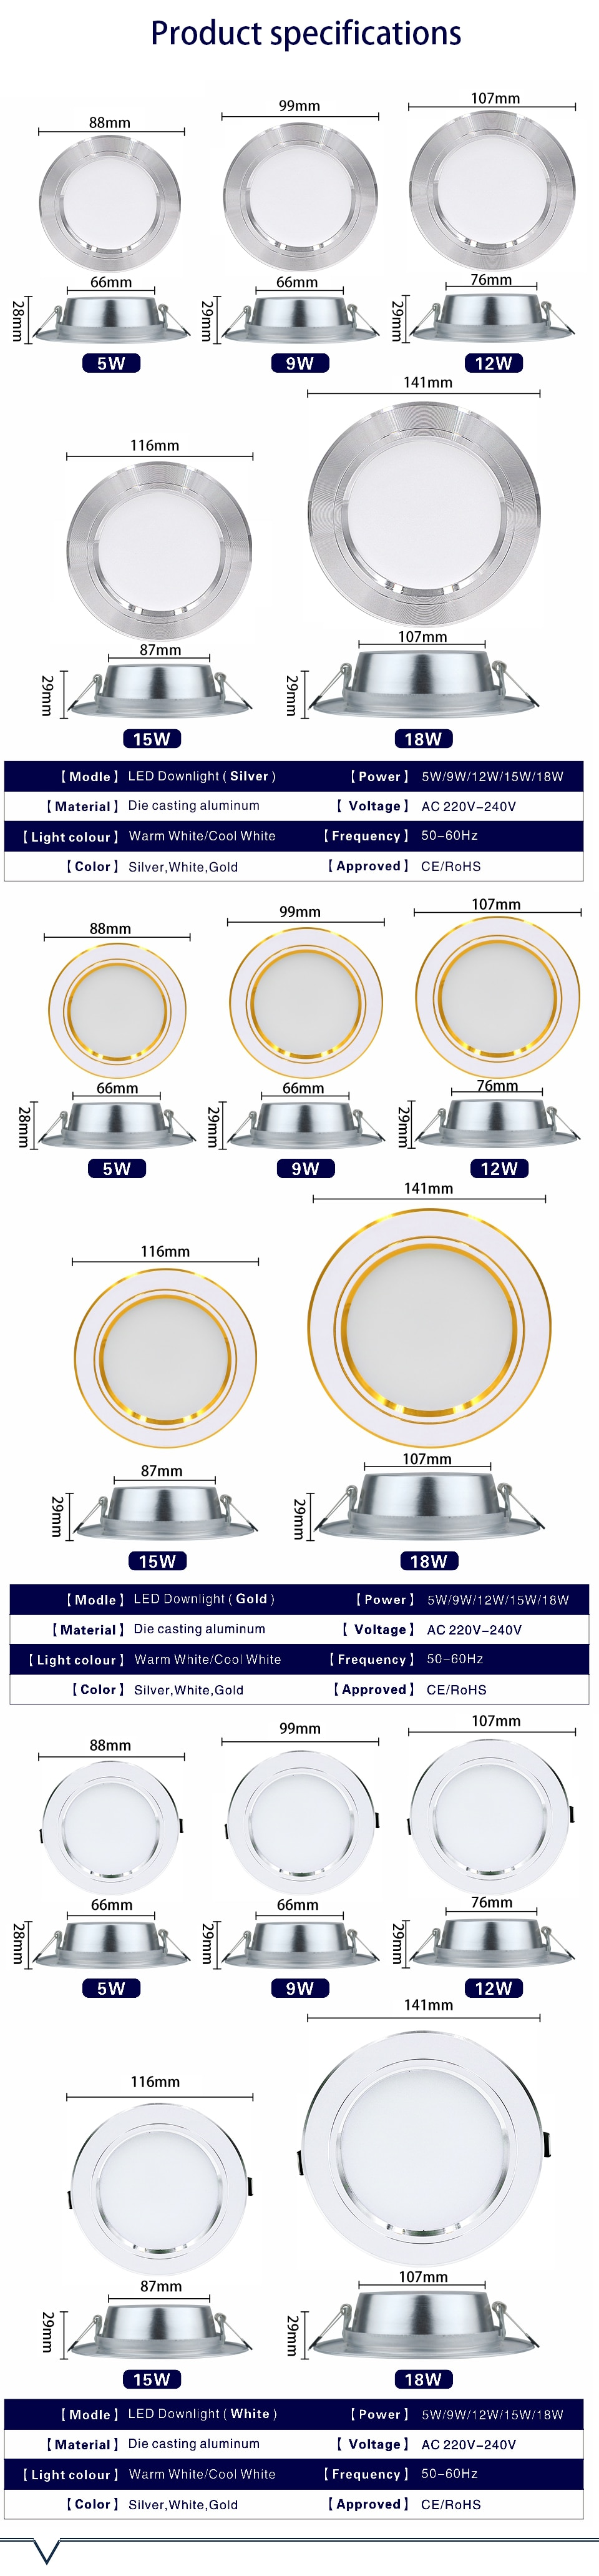 H58facebcee1d436a8e08de92d08cc5bcZ - 10pcs/lot LED Downlight 5W 9W 12W 15W 18W Recessed Round LED Ceiling Lamp AC 220V-240V Indoor Lighting Warm White Cold White